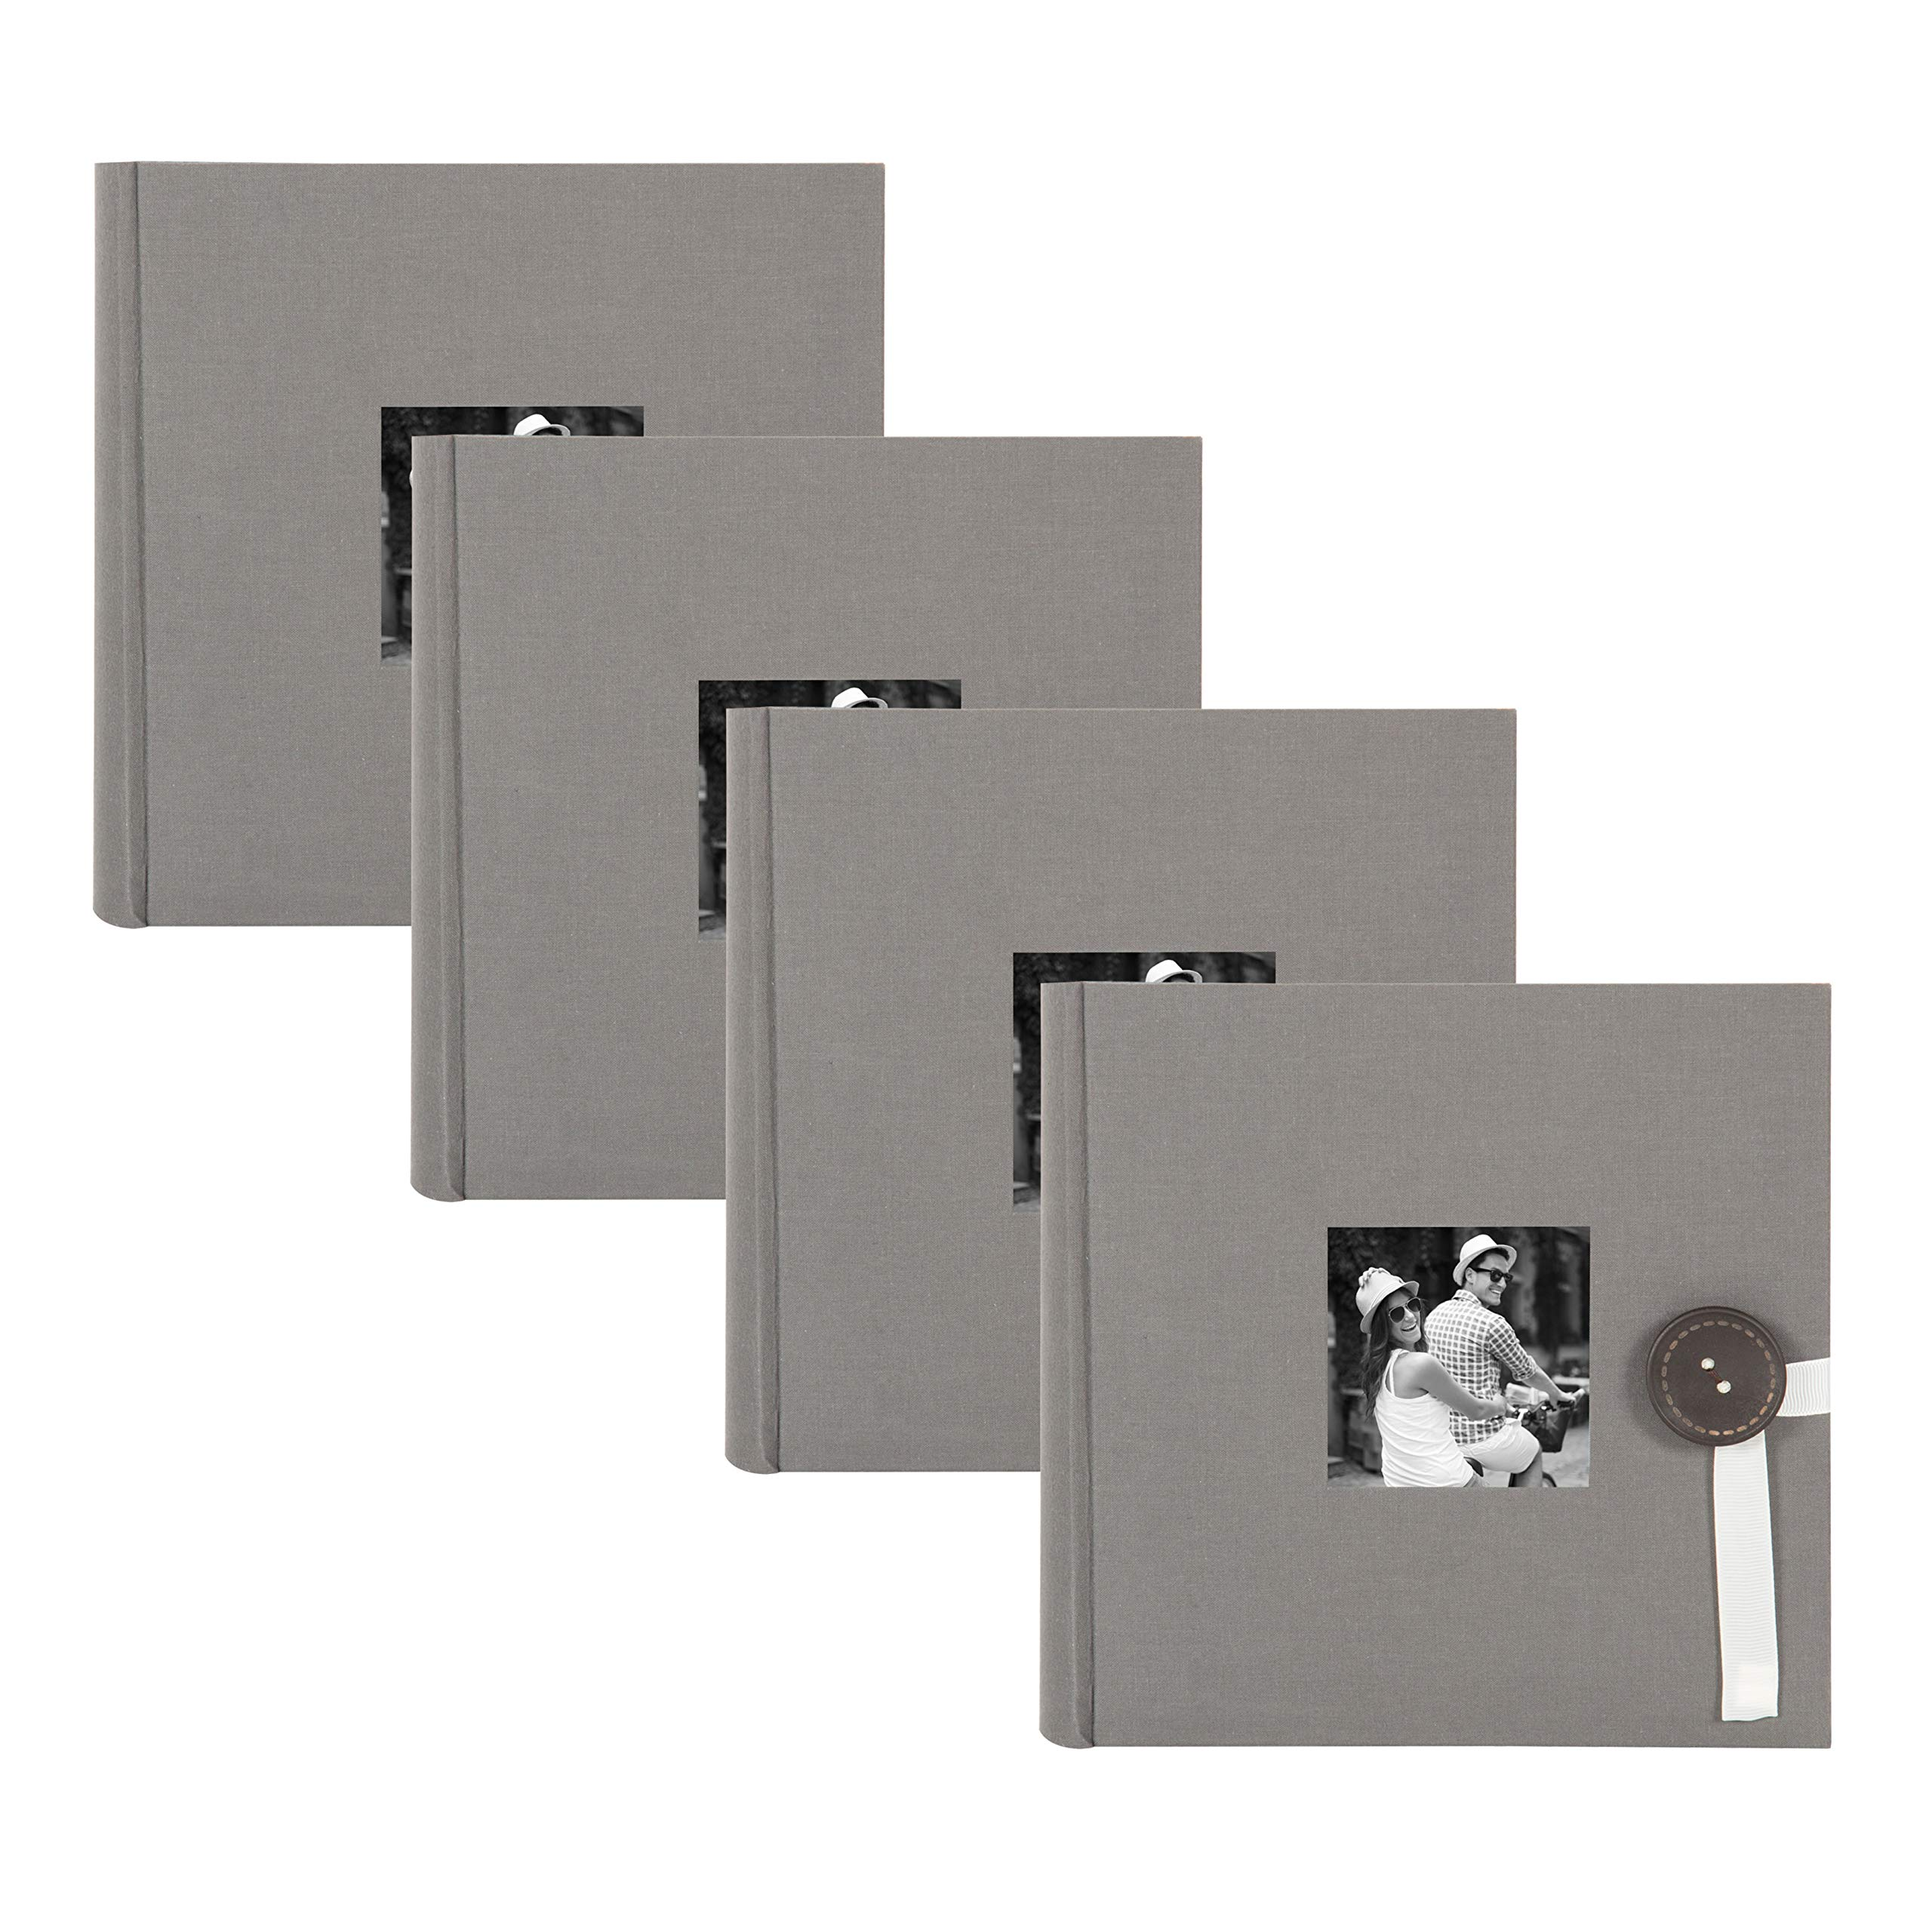 DesignOvation Kim Fabric Photo Albums with Ribbon and Button Closures, Holds 200 4x6 Photos, Set of 4, Gray by DesignOvation